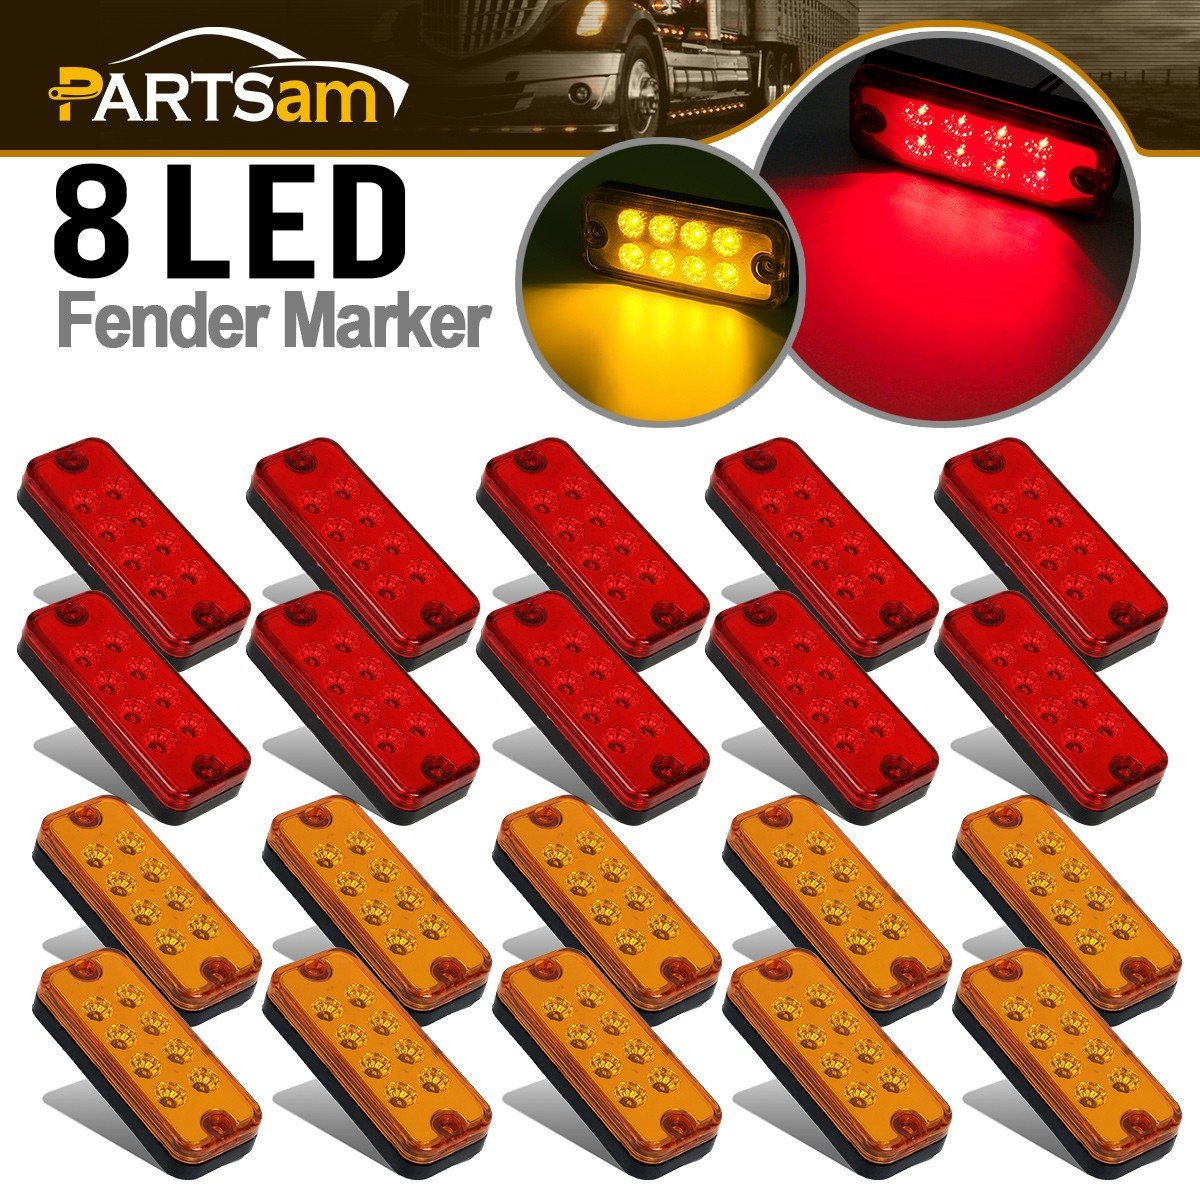 Partsam 20x 4 Side Marker Car Truck Trailer Light Indicators 8-LED Amber/Red by Partsam